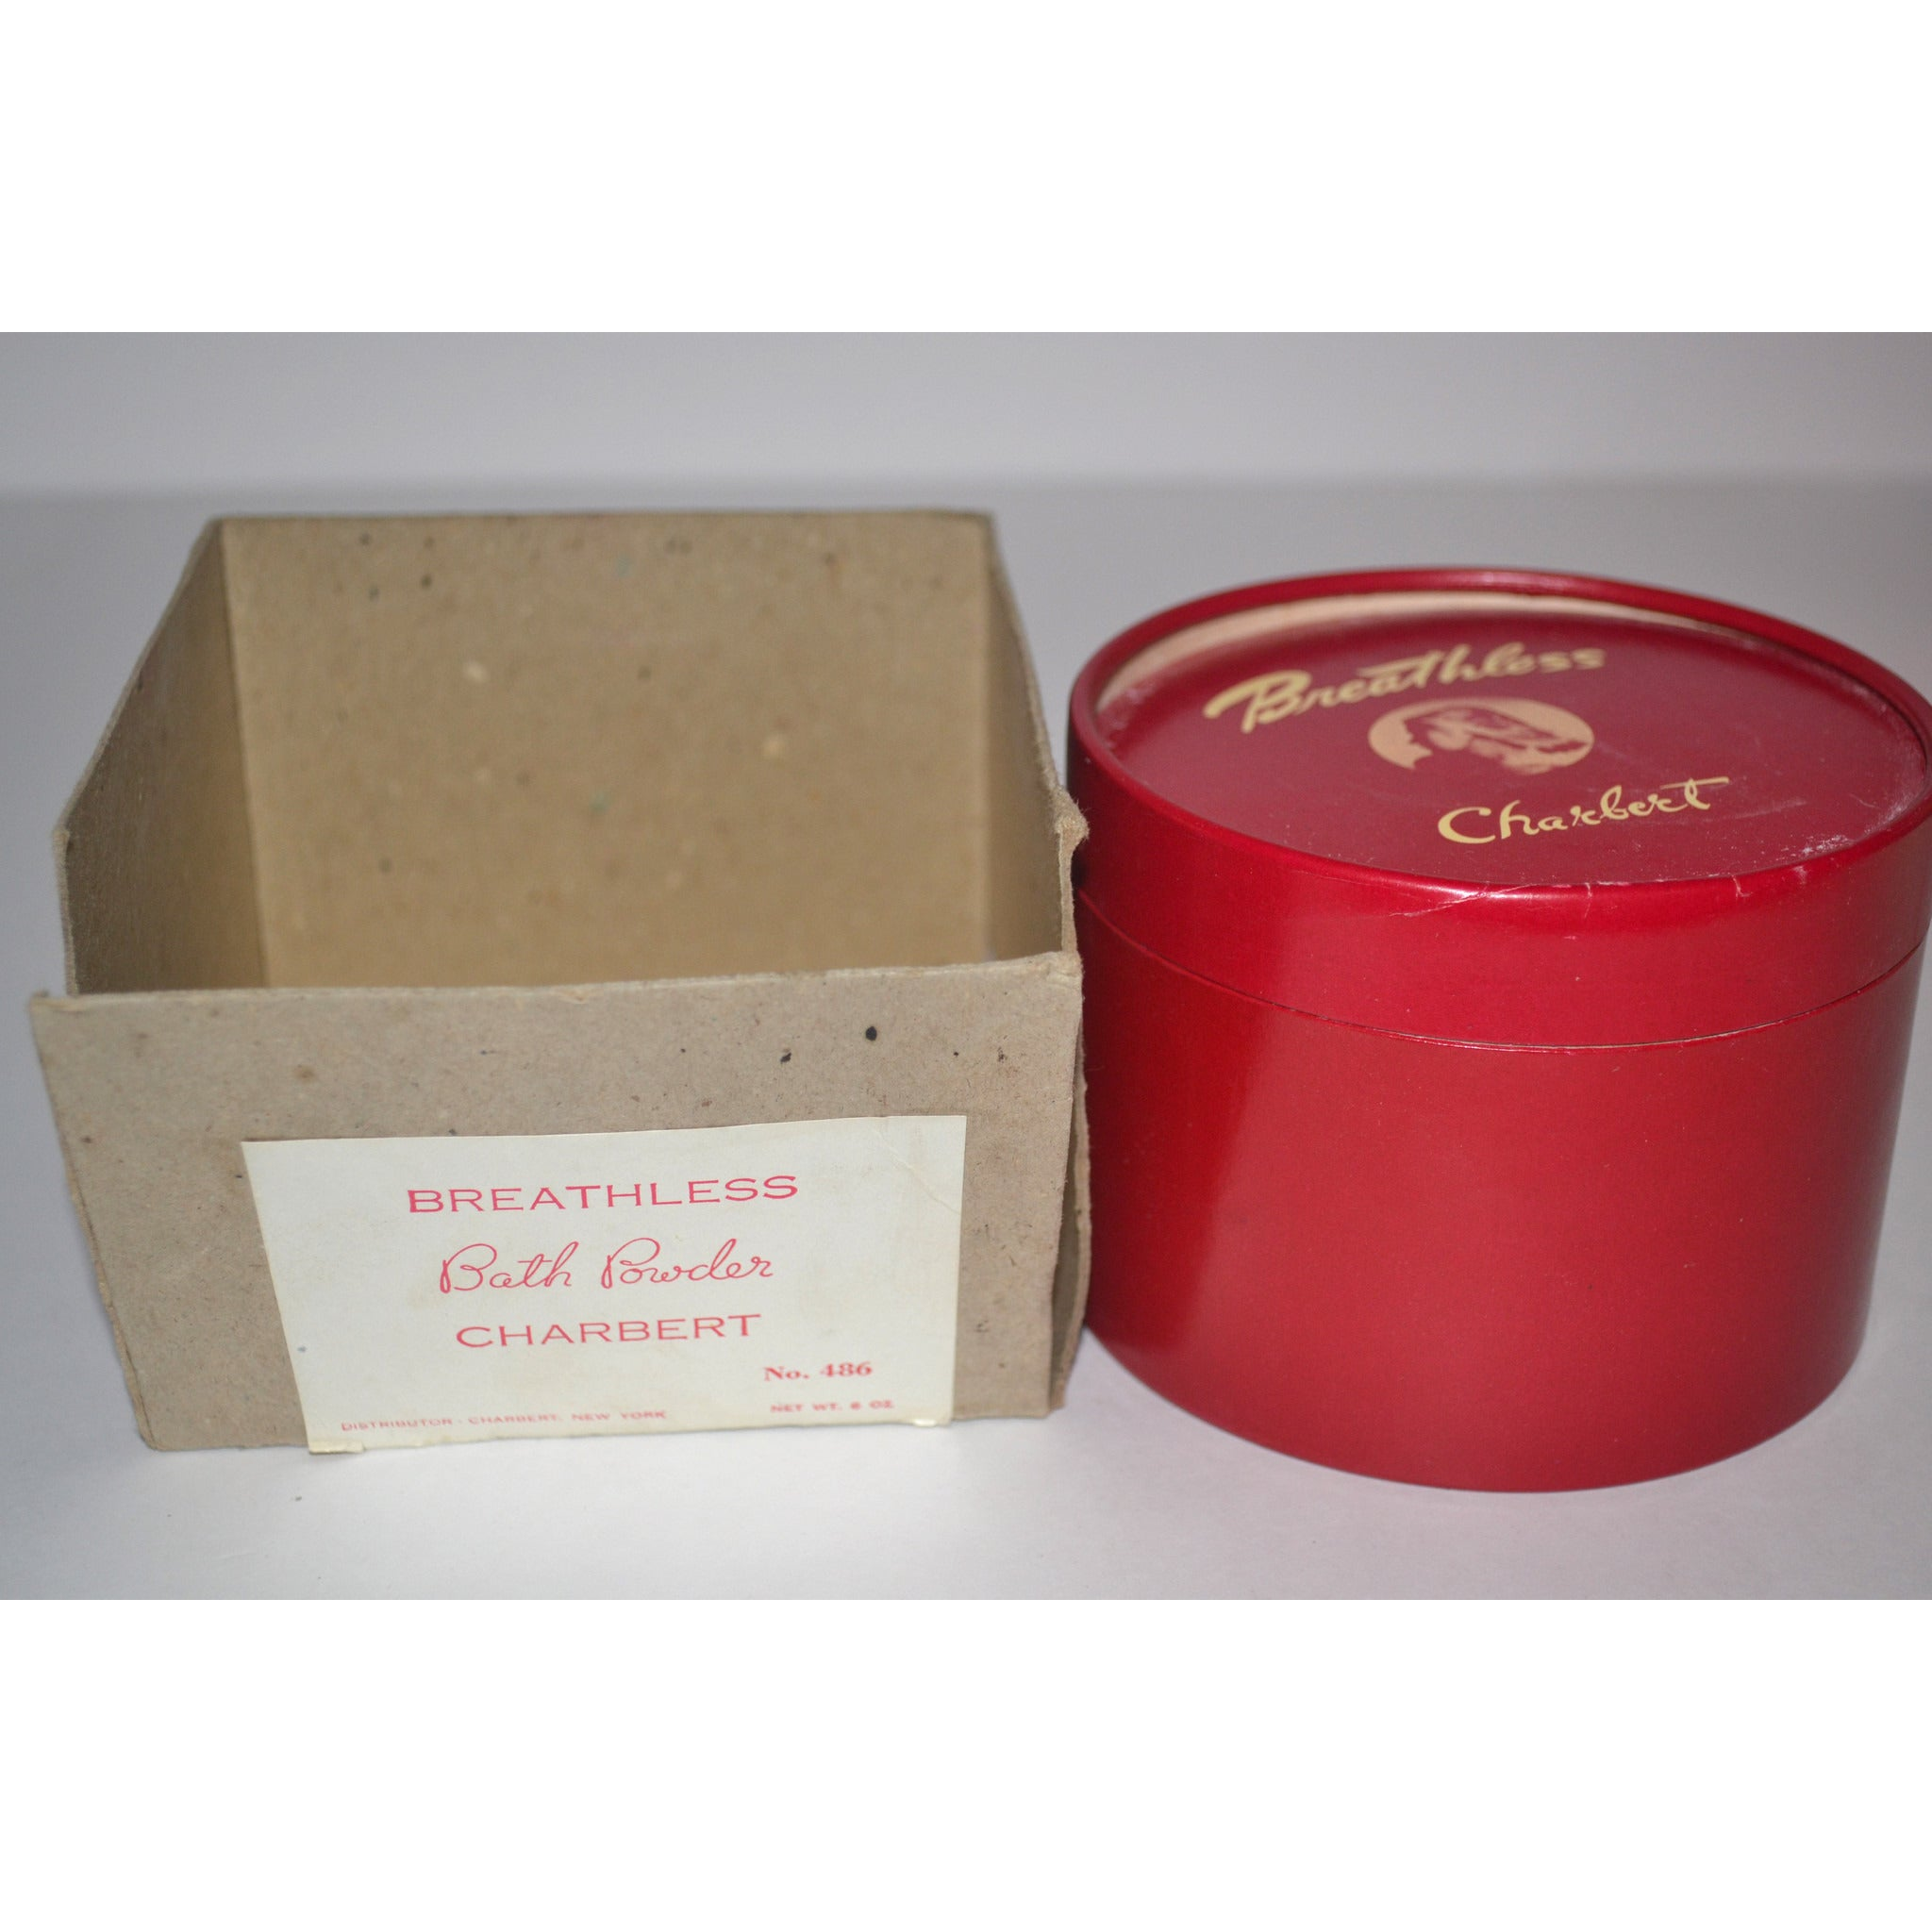 Vintage Breathless Bath Powder By Charbert